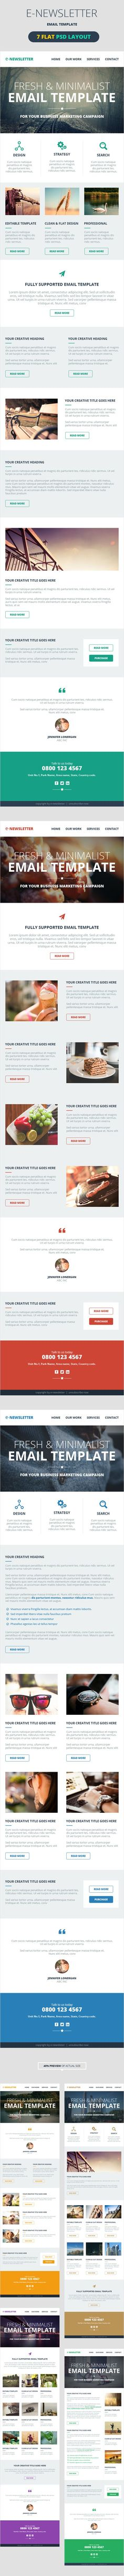 E-Newsletter - Multipurpose Email Template | Campaign monitor ...